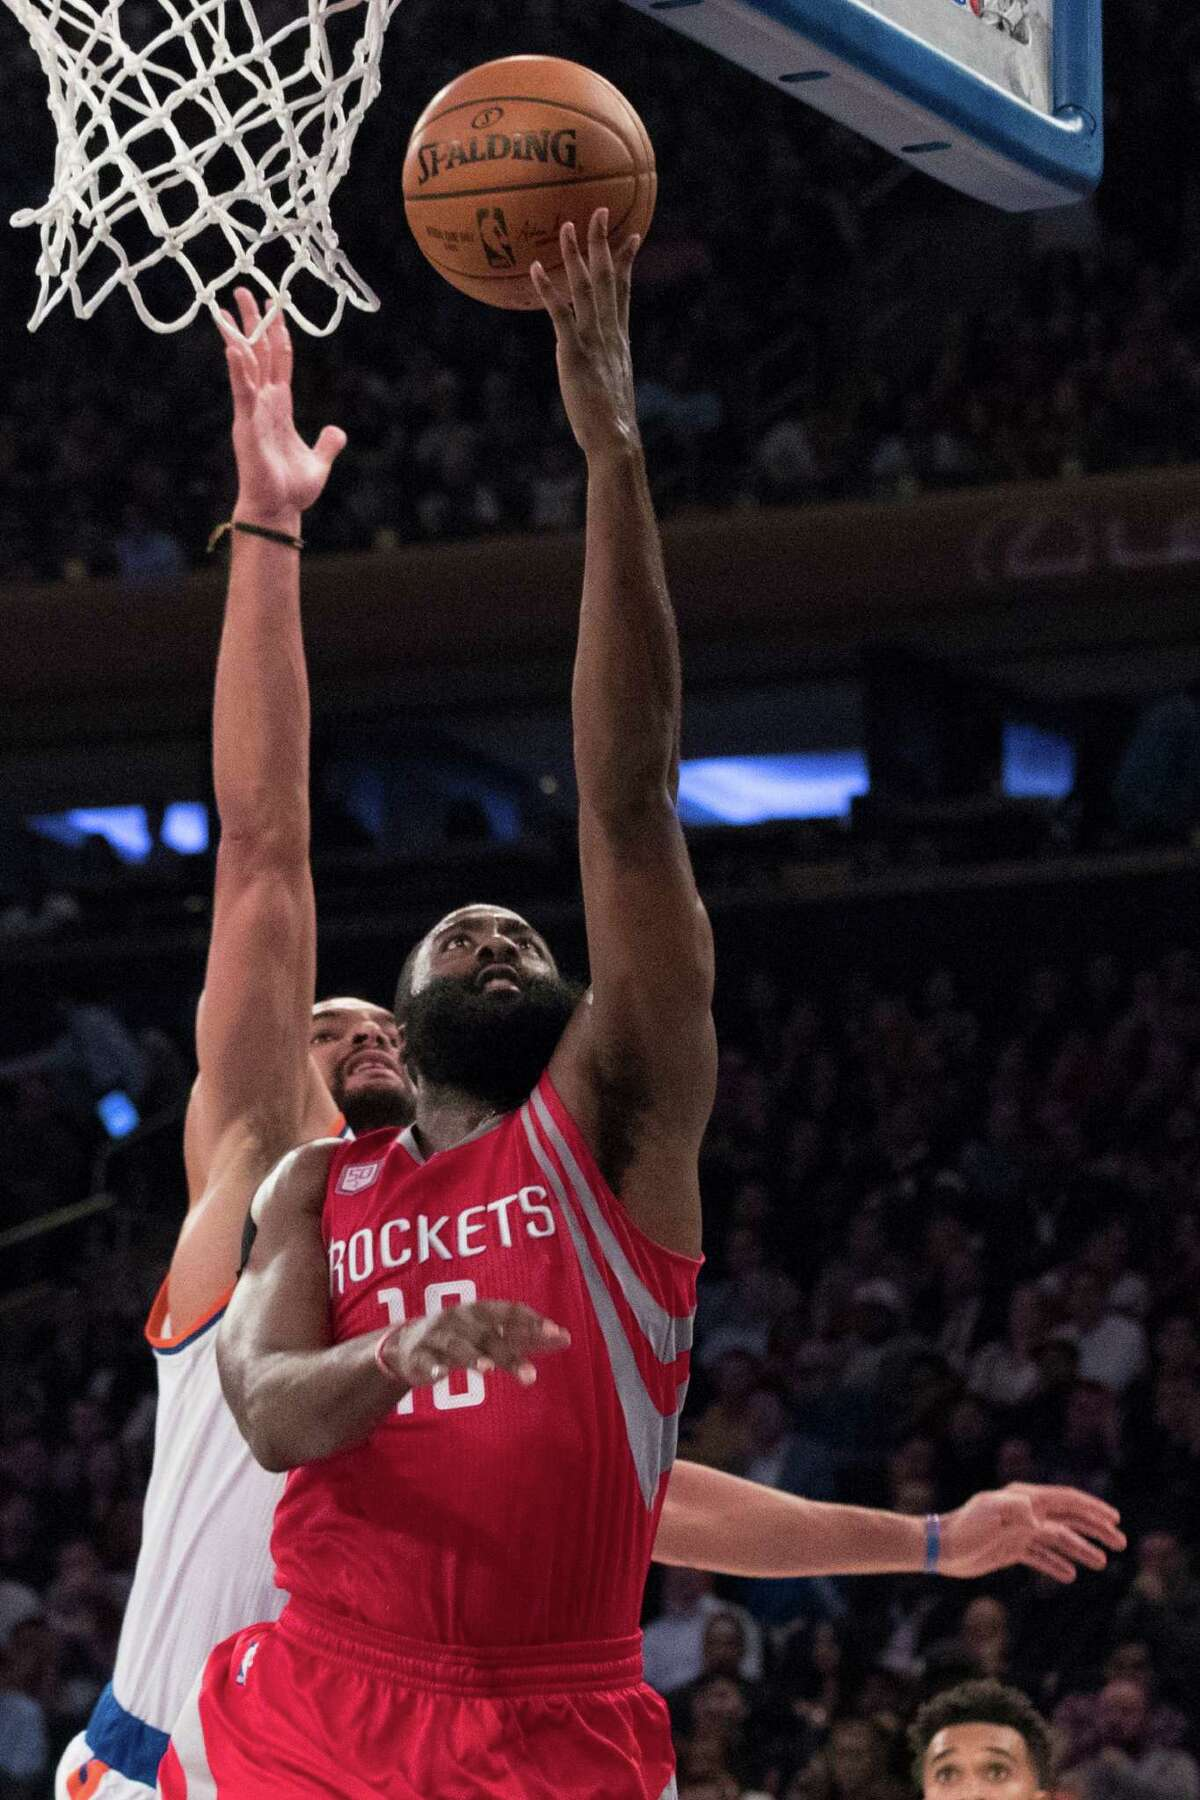 Rockets guard James Harden goes to the basket past the Knicks' Joakim Noah for two of his 30 points.